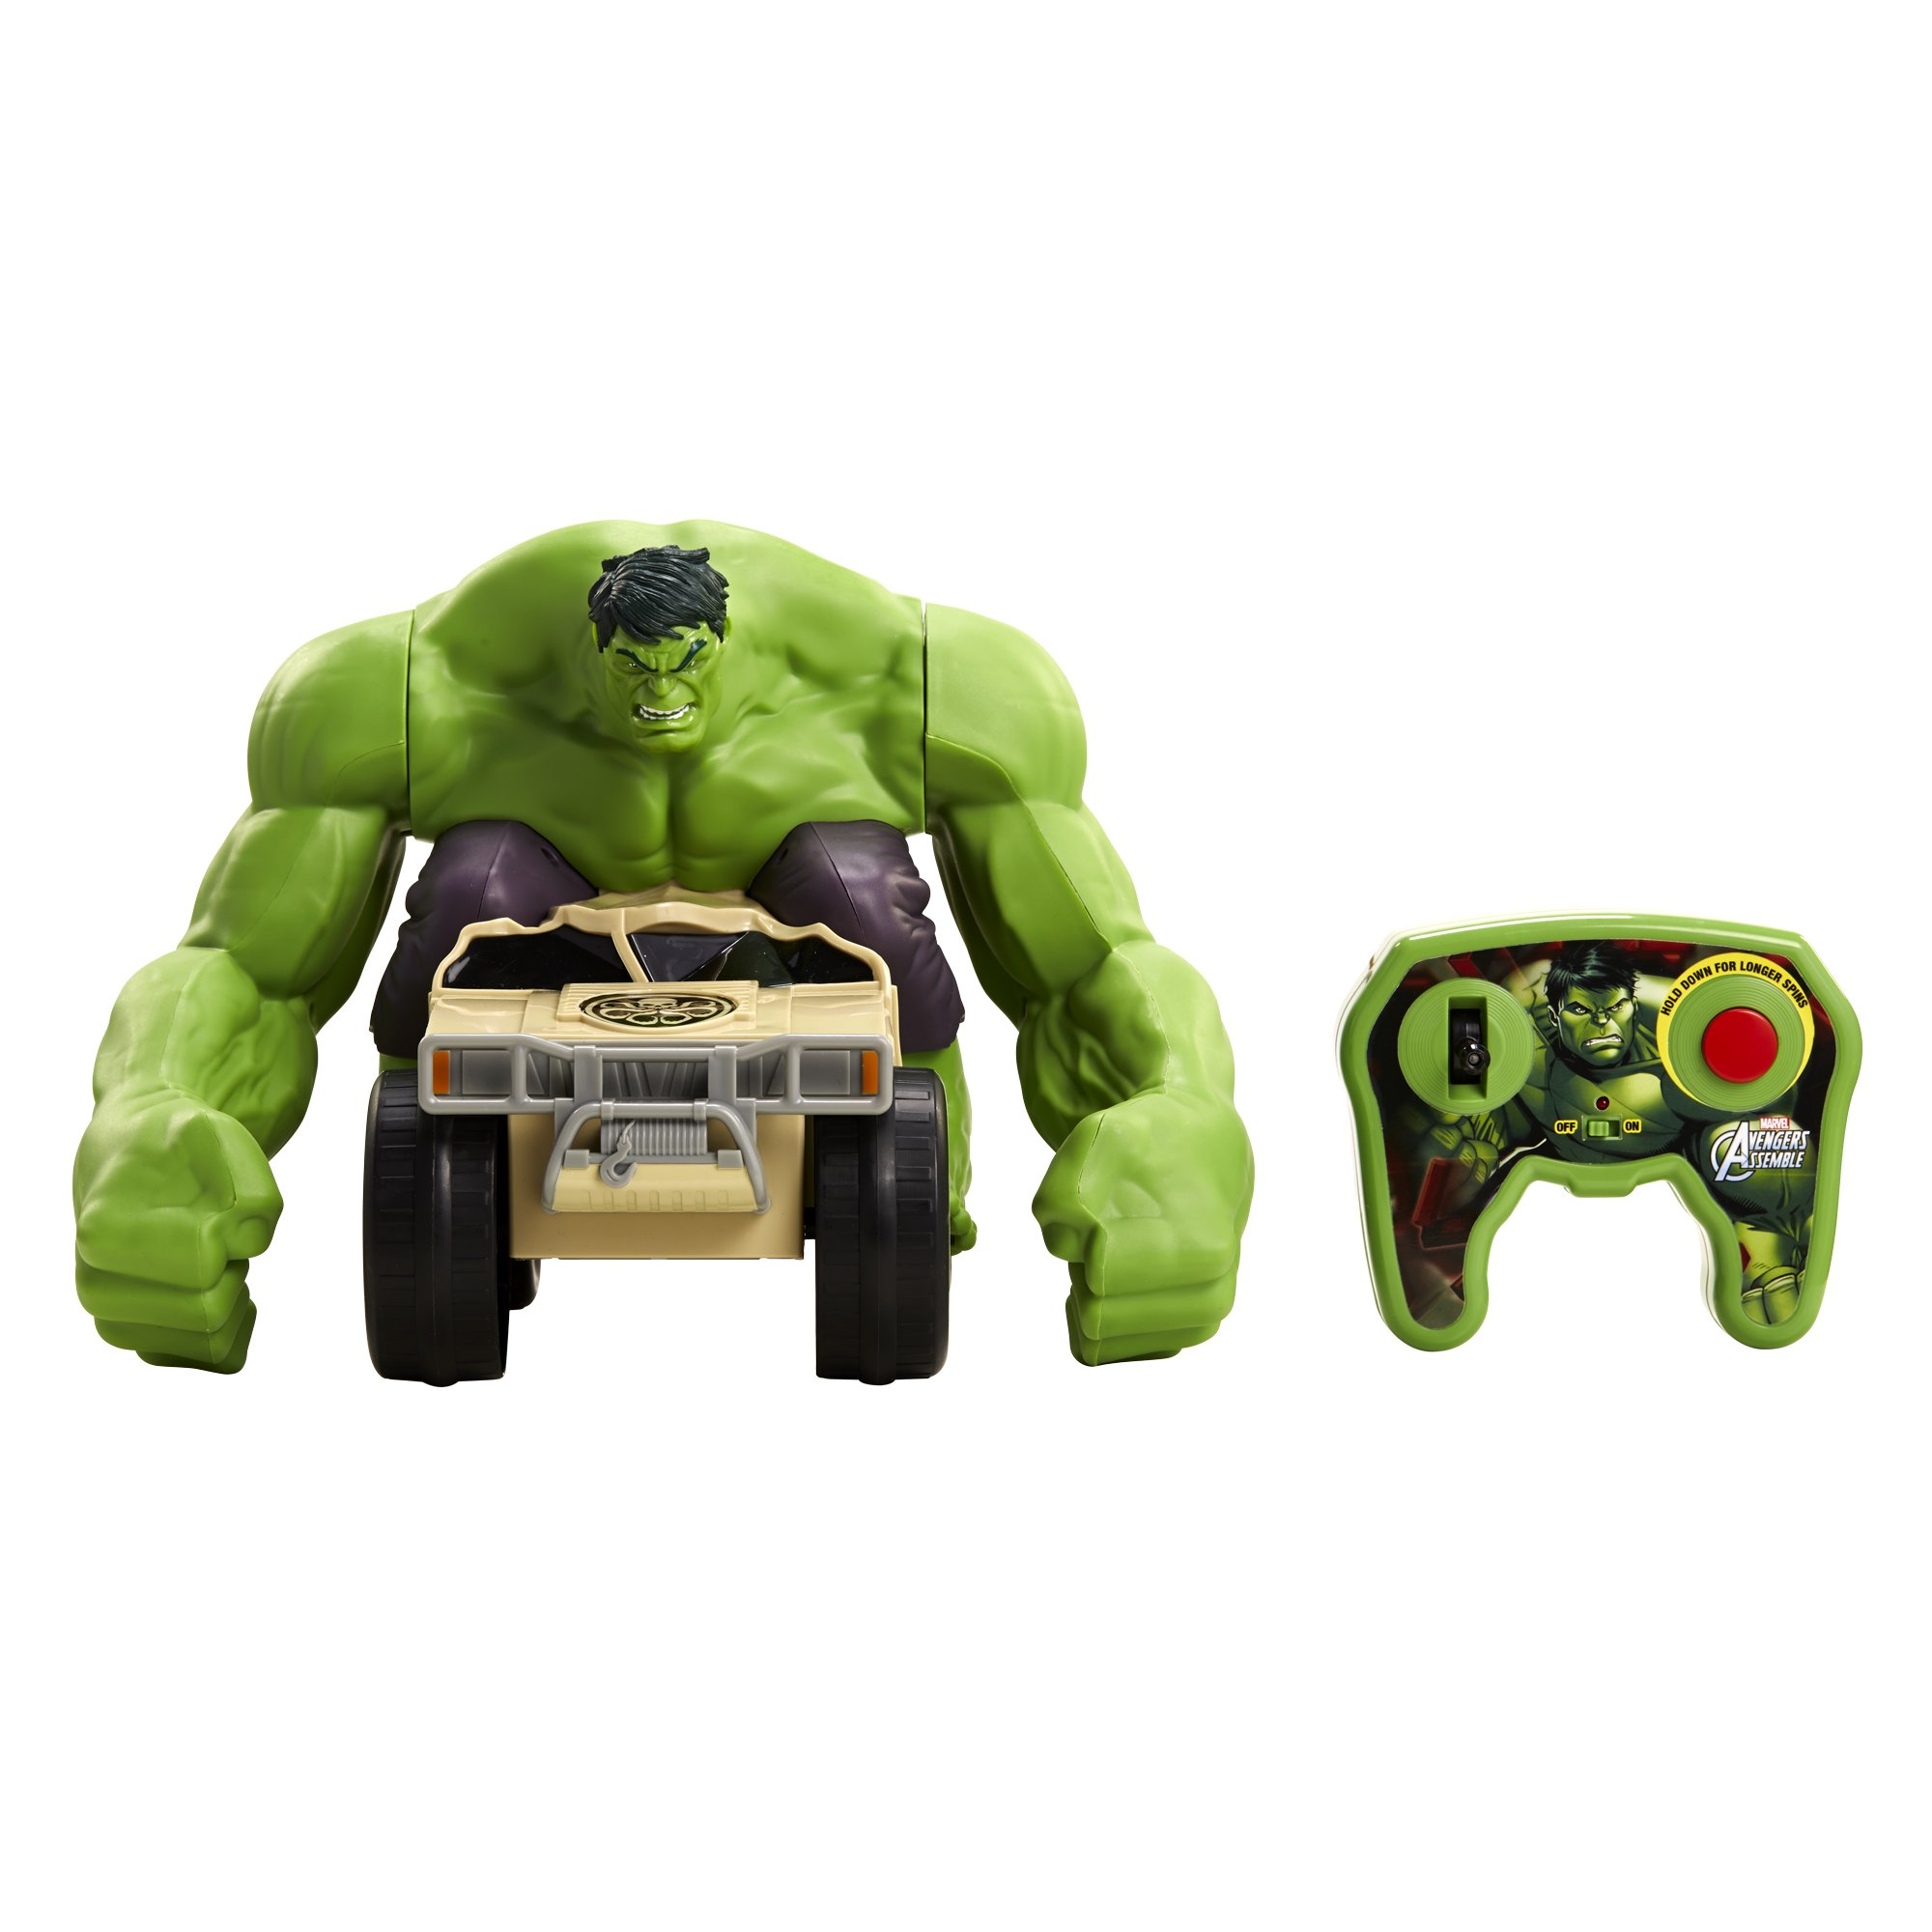 XPV Avengers Marvel-RC Hulk Smash Toy Vehicle